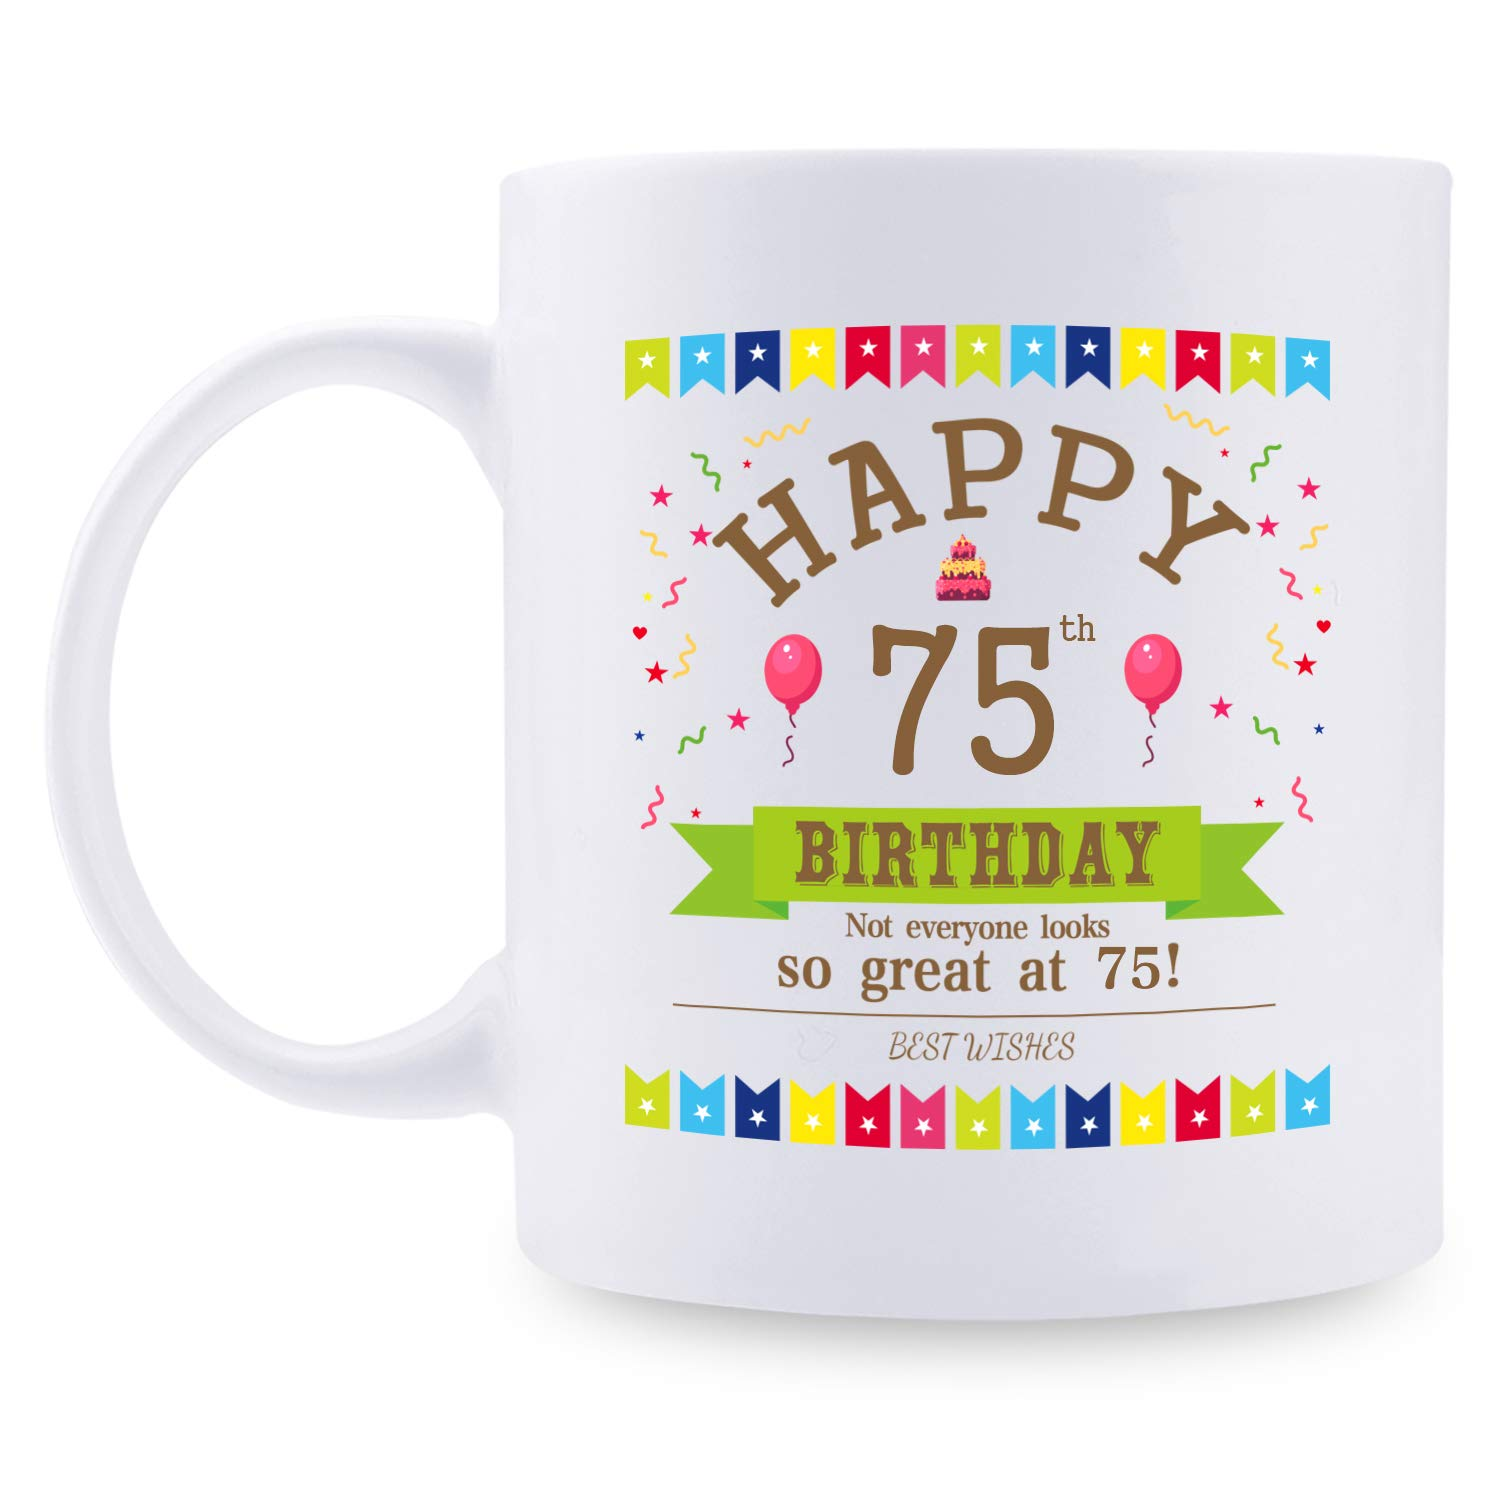 75th Birthday Gifts for Women - 1945 Birthday Gifts for Women, 75 Years Old Birthday Gifts Coffee Mug for Mom, Wife, Friend, Sister, Her, Colleague, Coworker - 11oz